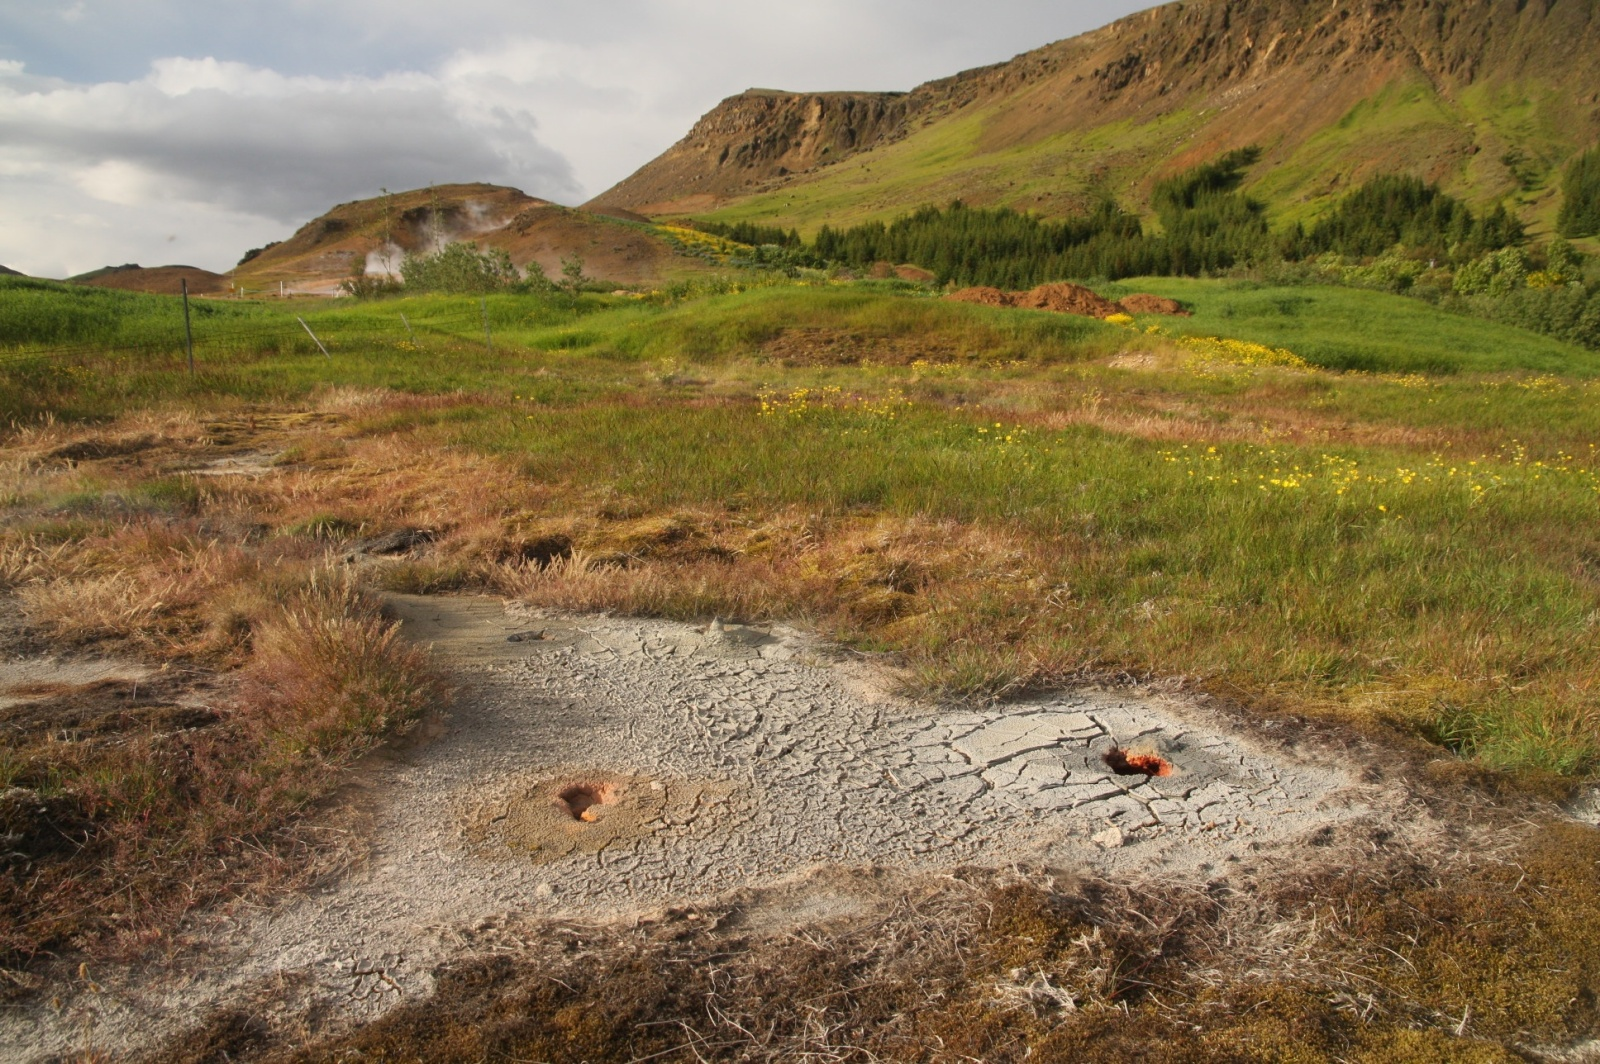 The people of Hveragerði living nearby are quite worried - new holes are opening every week